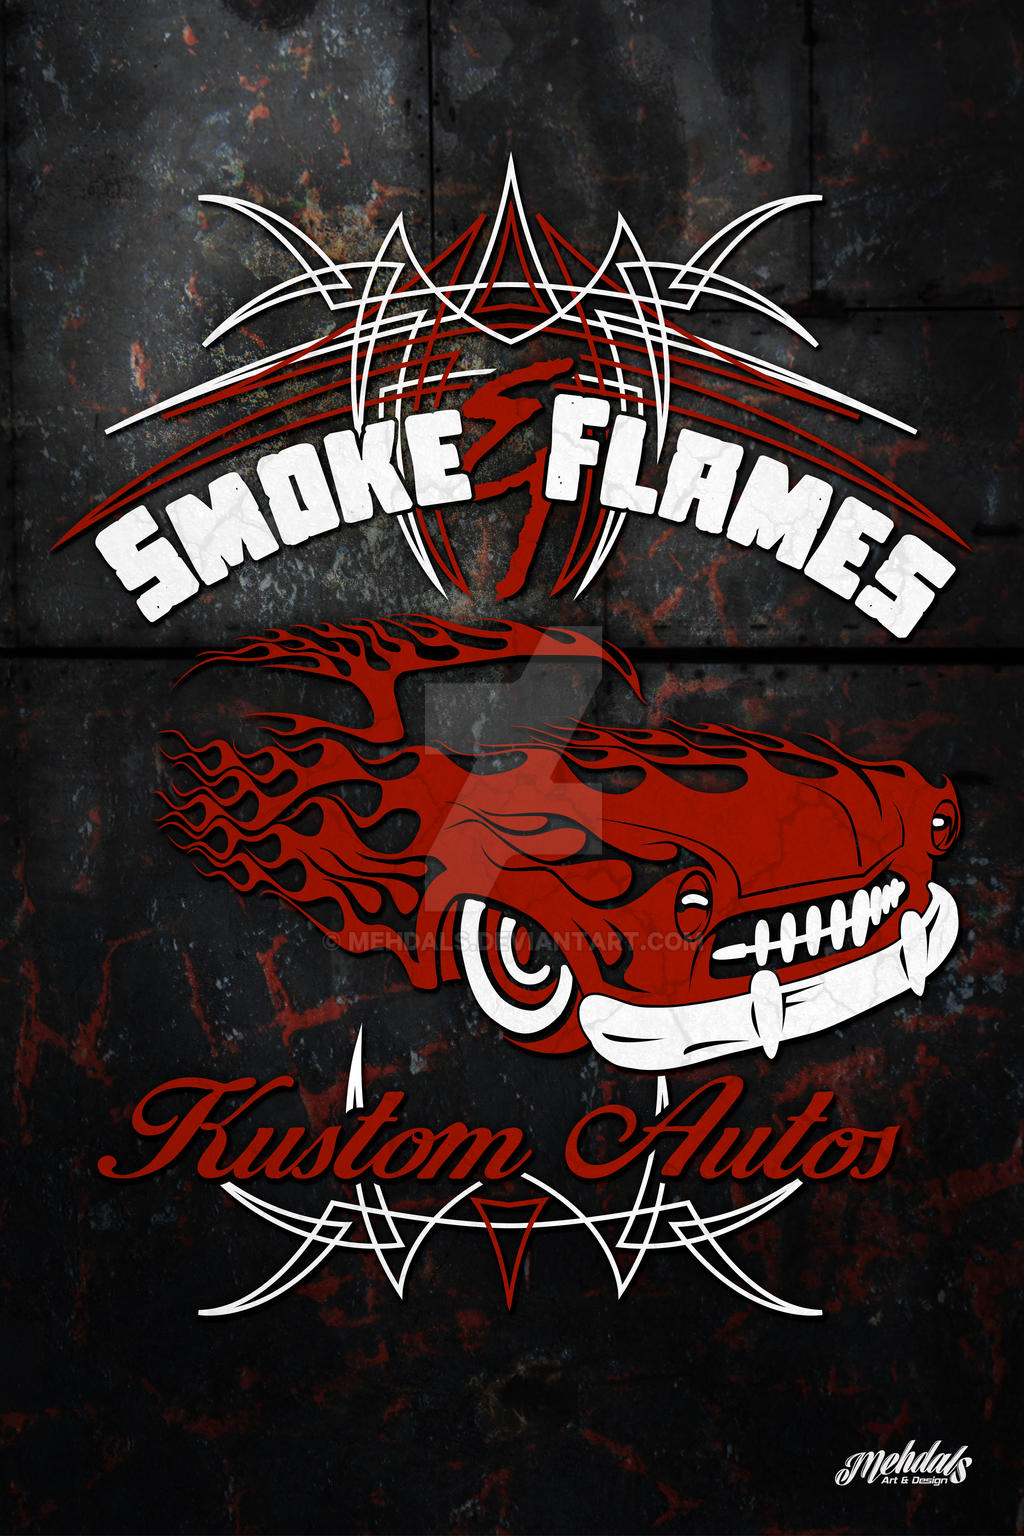 Smoke and Flames Poster by Mehdals